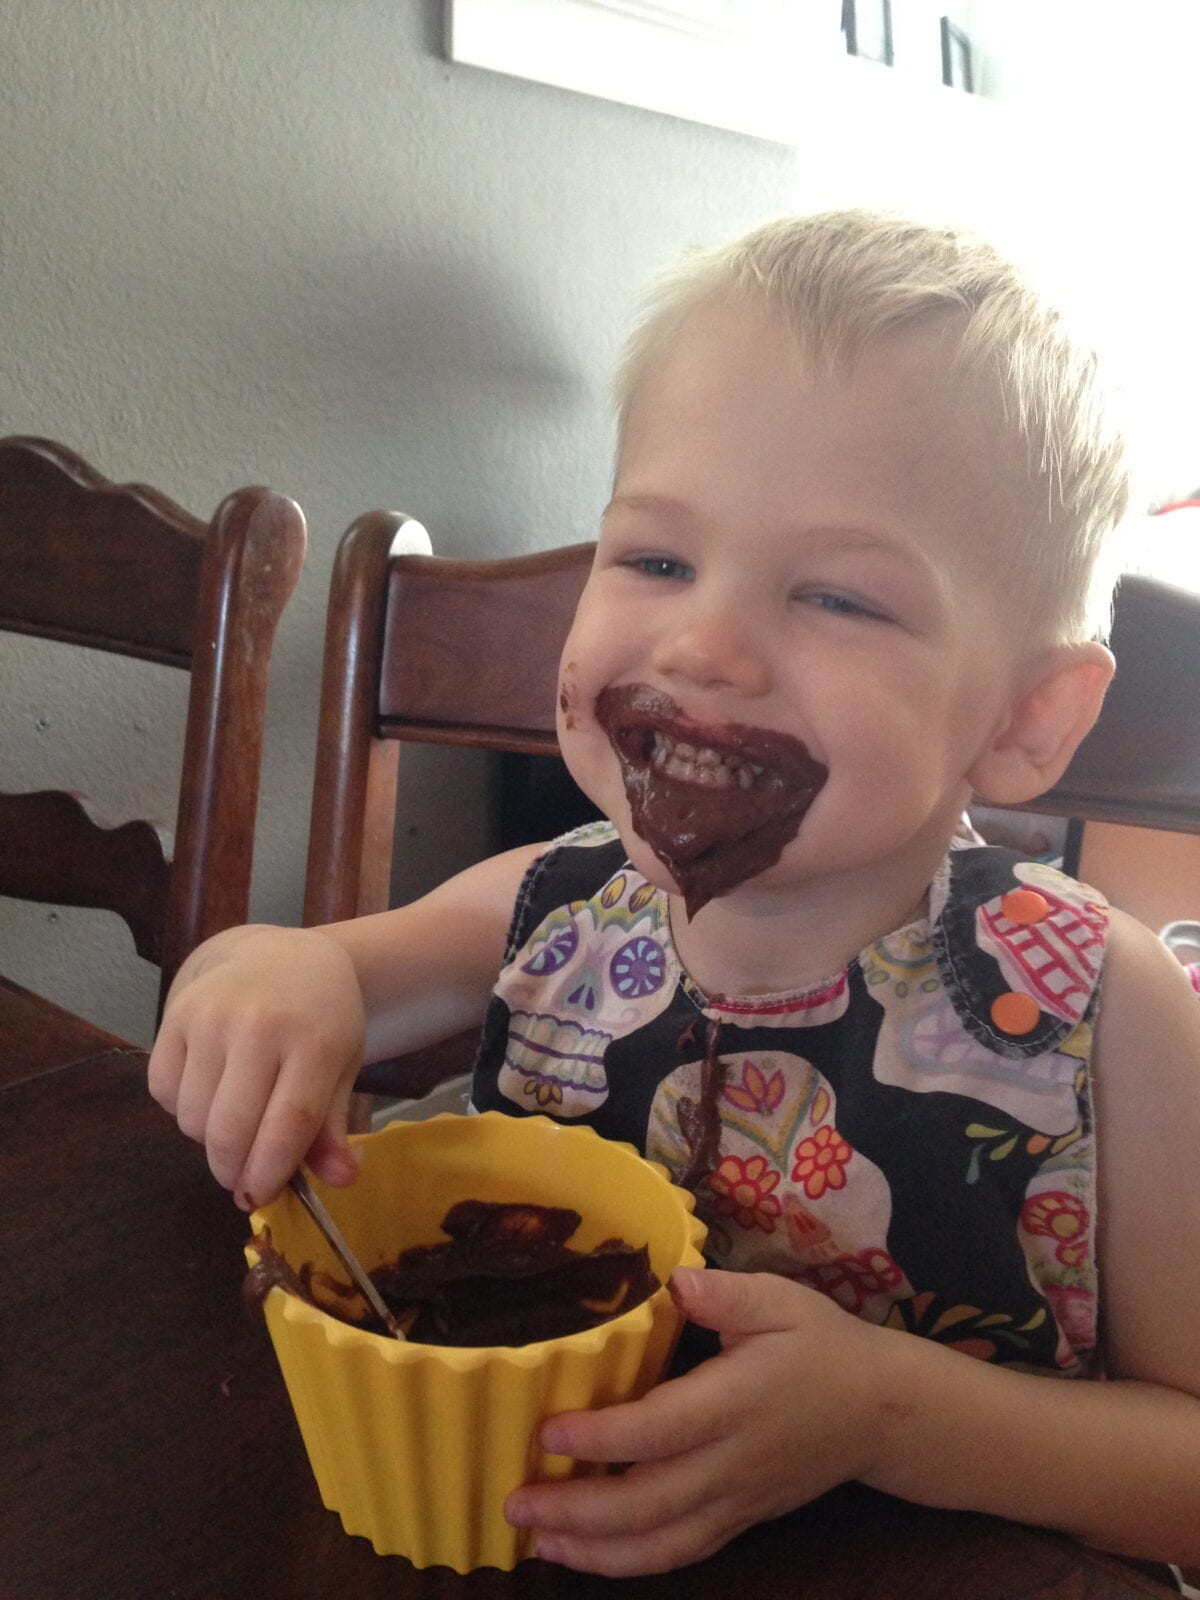 Can Babies Eat Chocolate Pudding